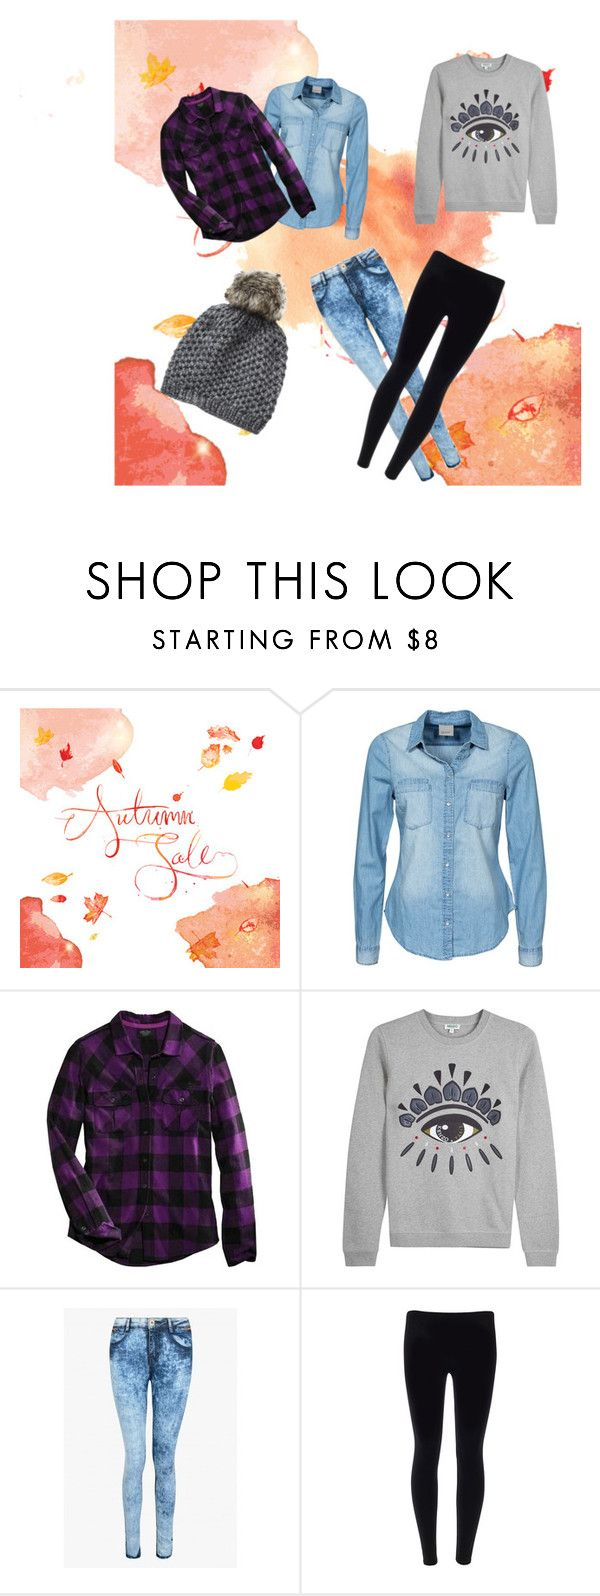 """""""Casual for fall"""" by loppy231 ❤ liked on Polyvore featuring Vero Moda, Harley-Davidson, Kenzo, Vincent Pradier, outfit, winter2015 and fall2015"""